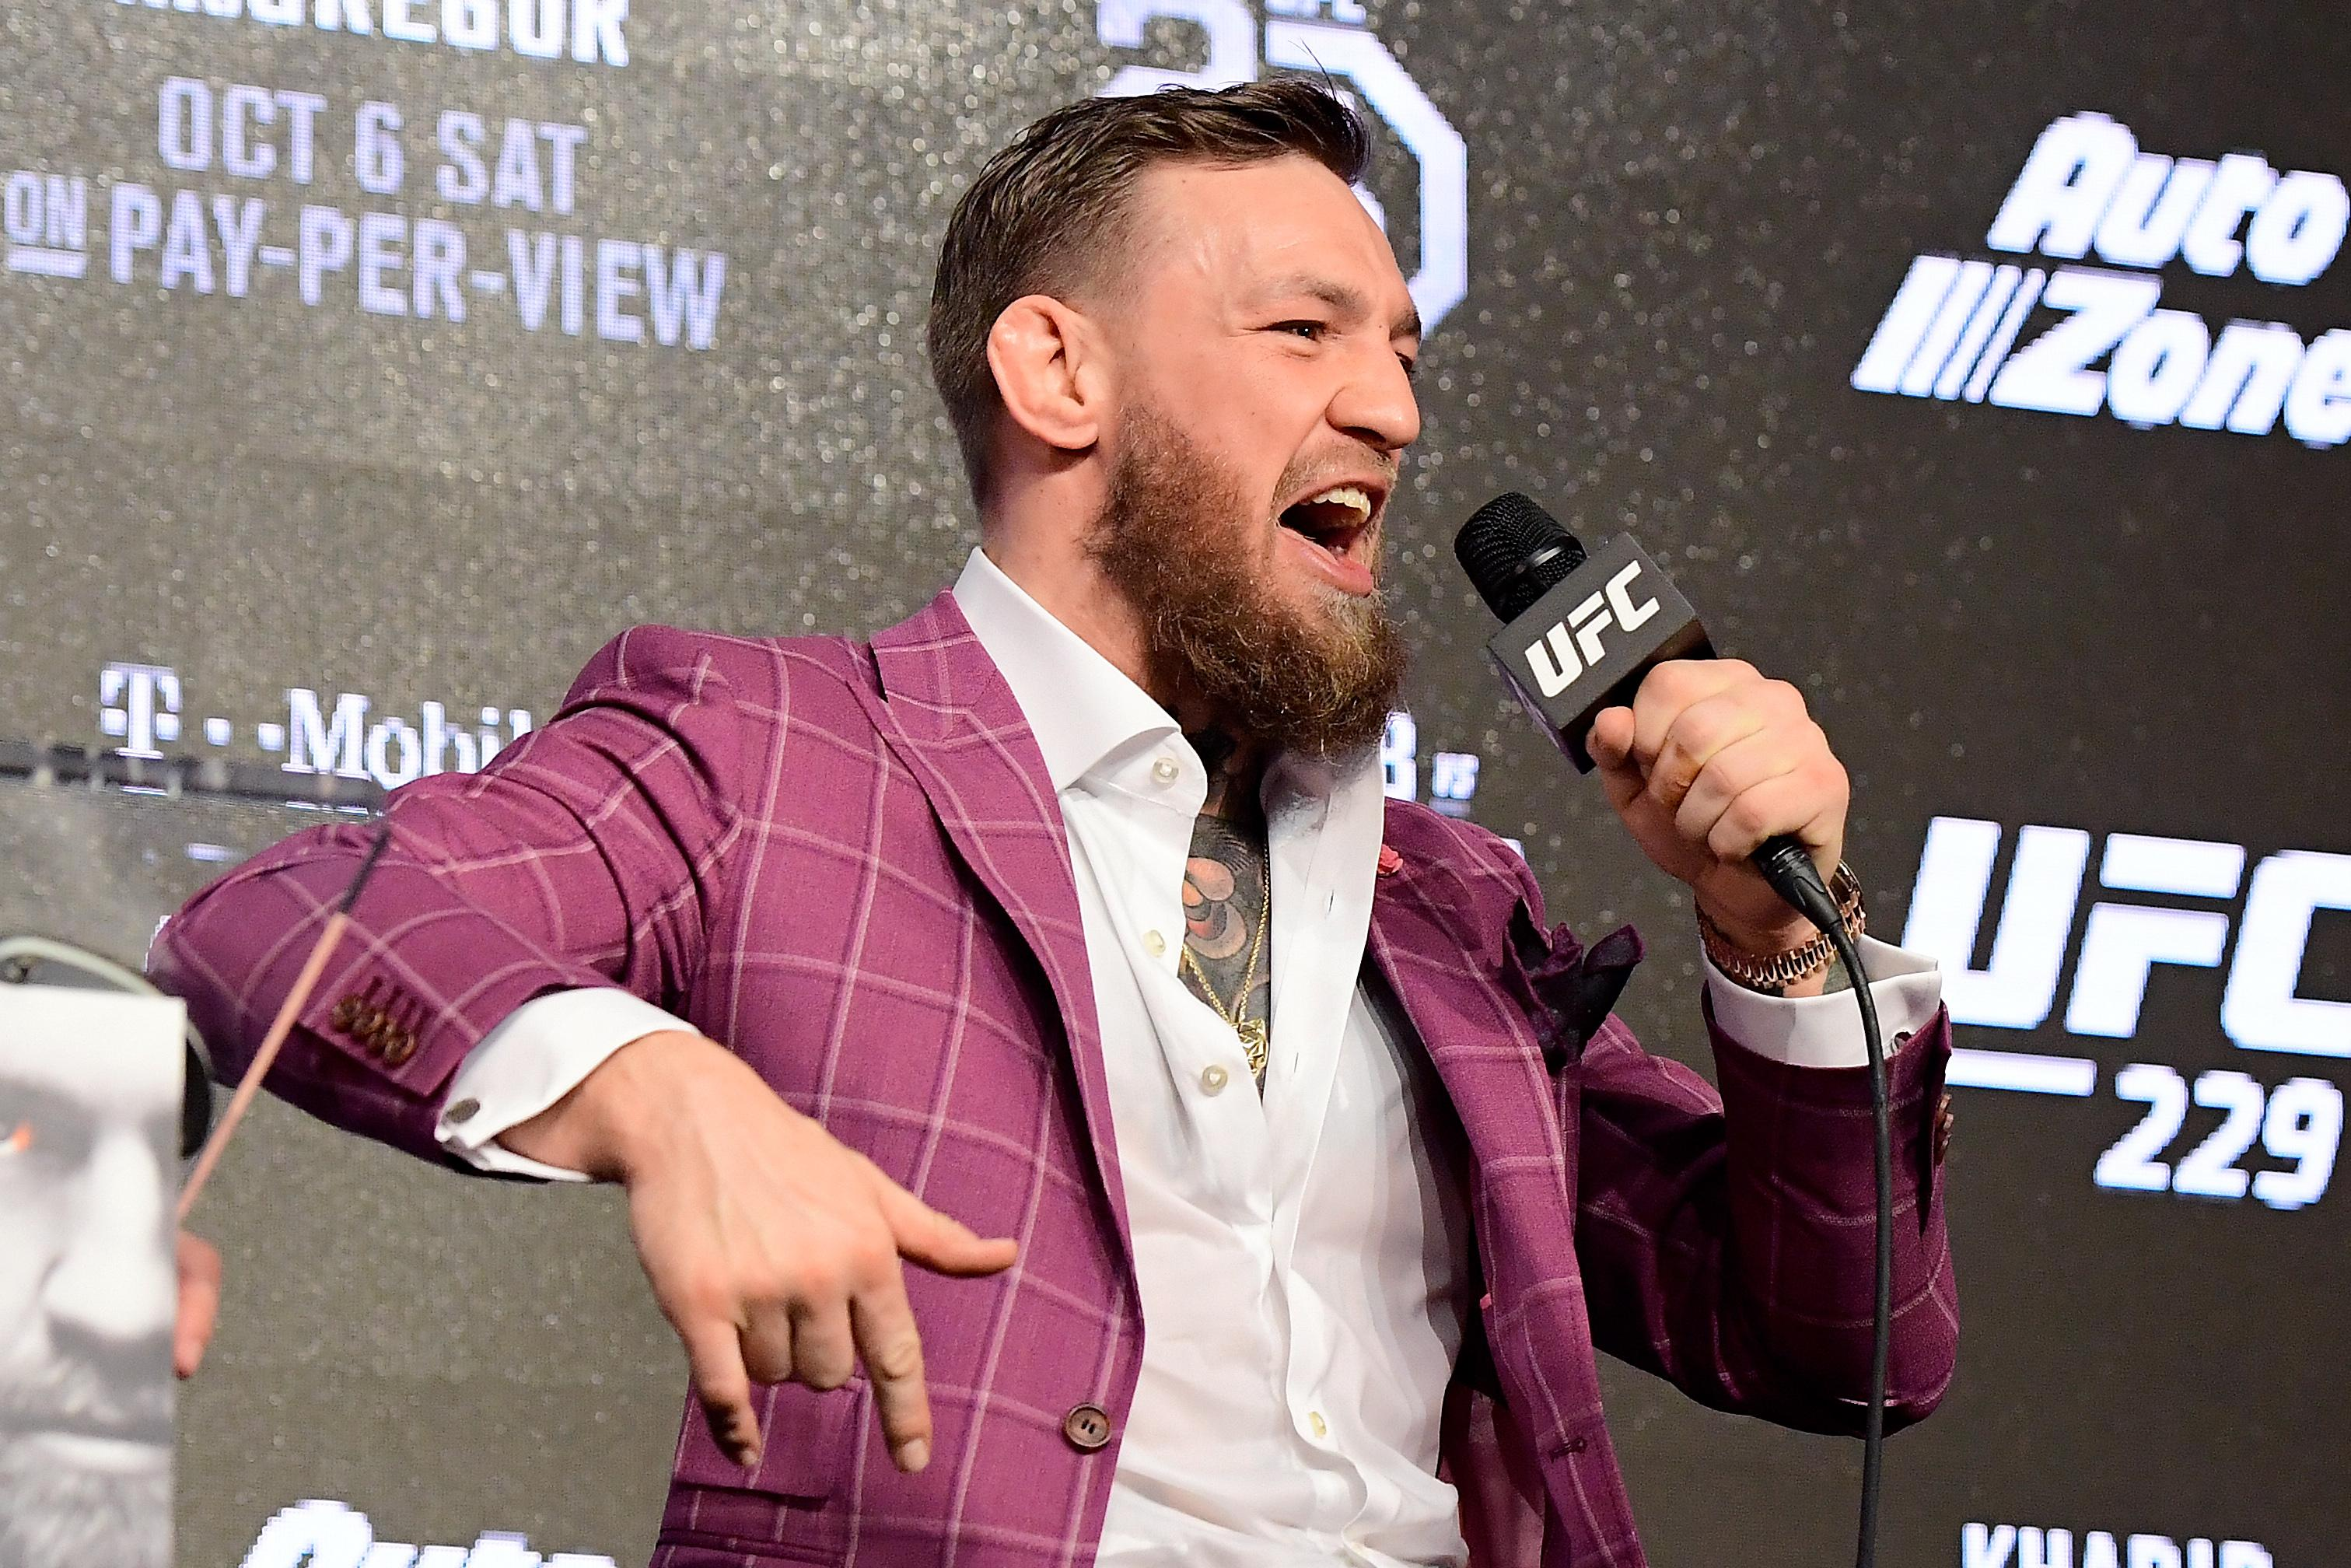 Conor McGregor has signed a new six-fight deal with UFC